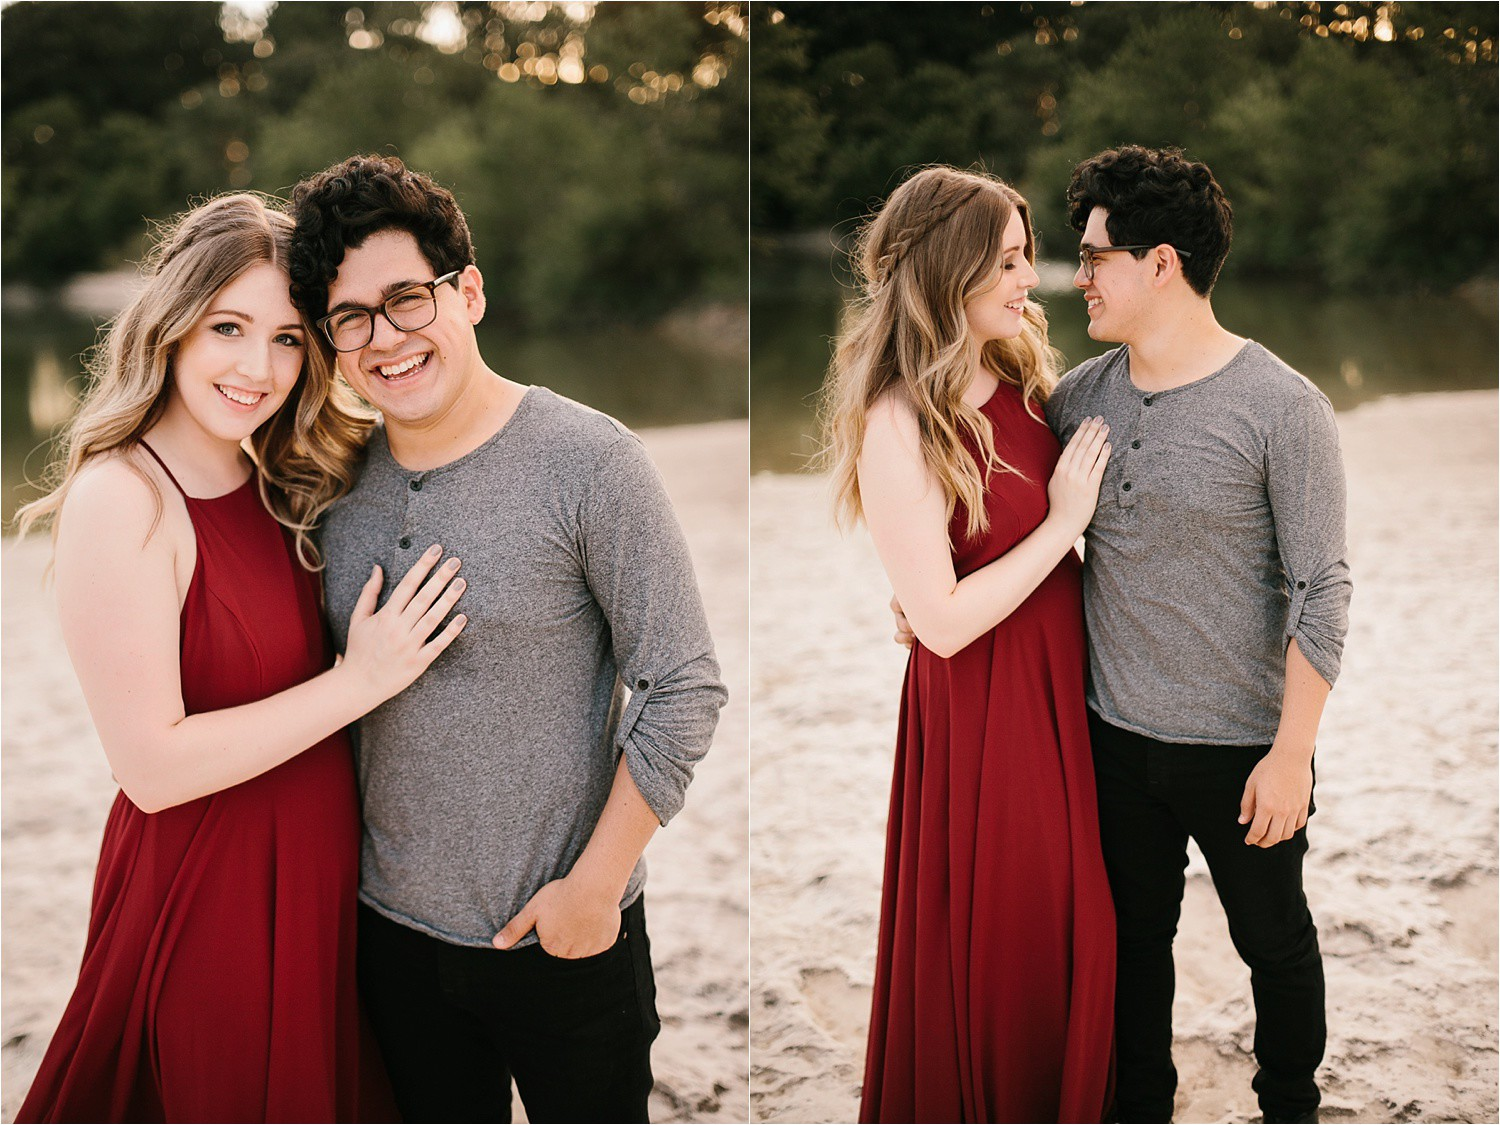 Romantic Austin, Texas Engagement Session with outfit inspiration + flowy red dress from Lulu's at Mckinney Falls State Park by North Texas Wedding Photographer, Rachel Meagan Photography __ 48